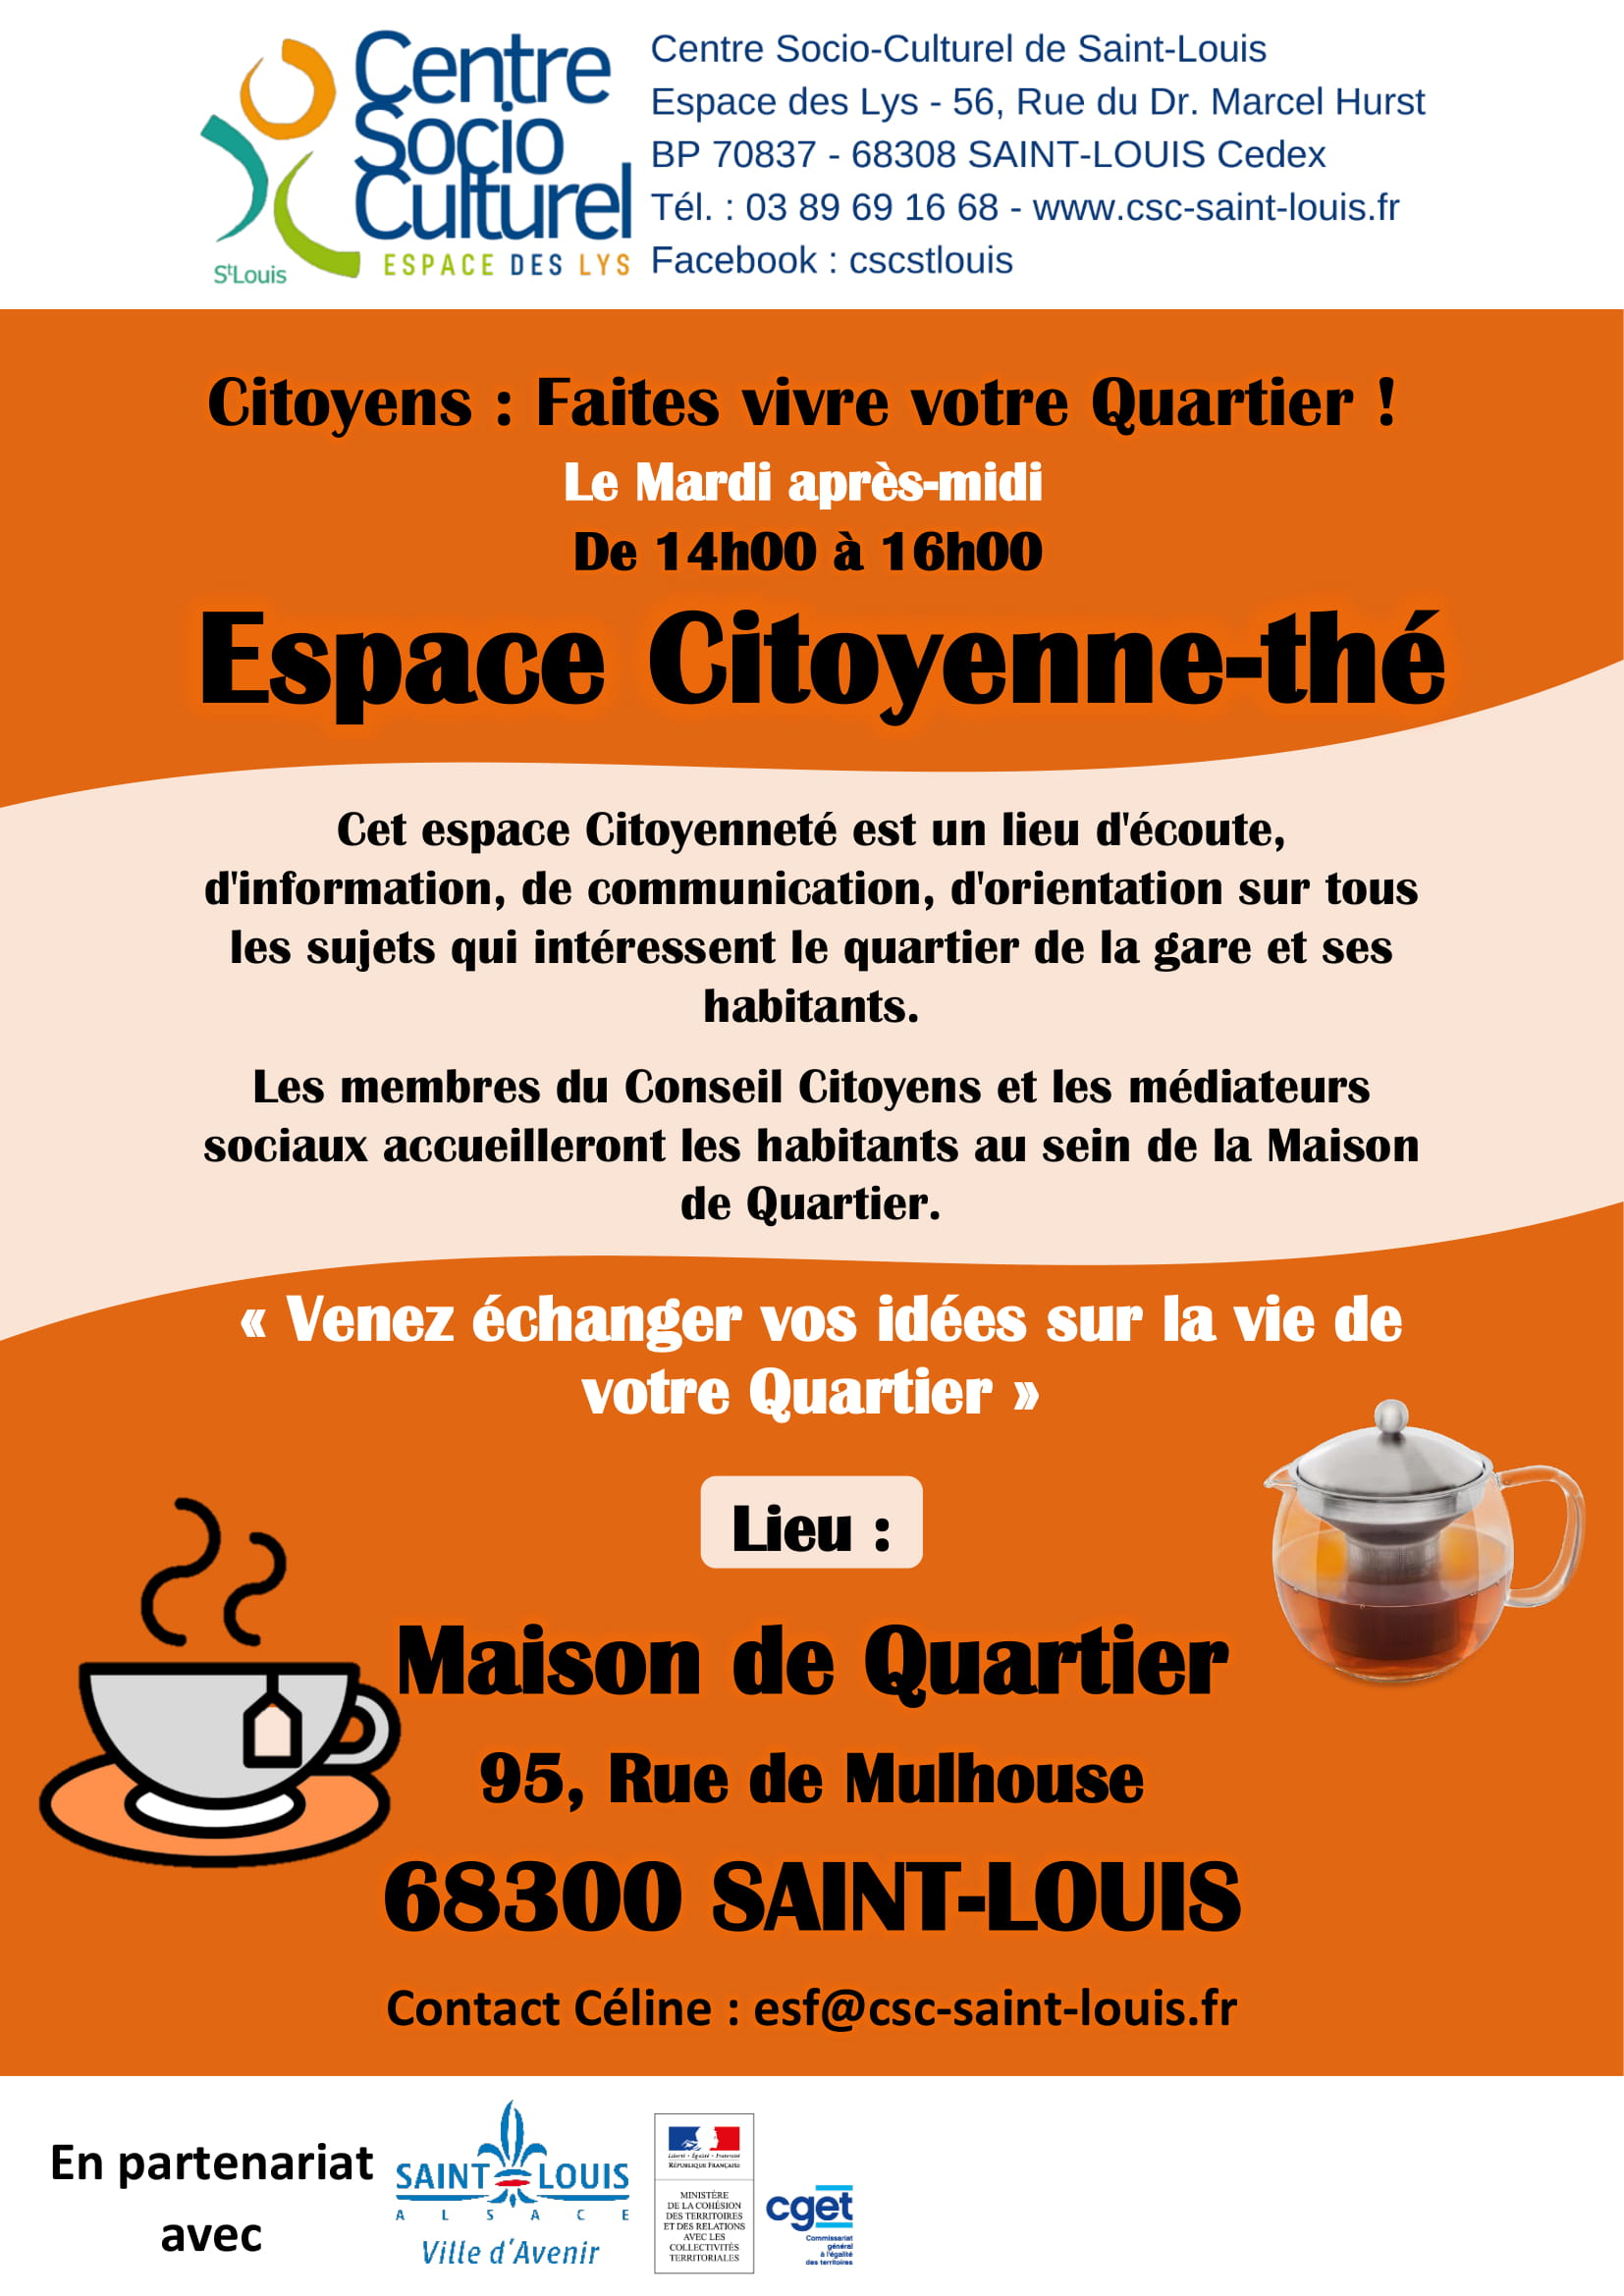 Espace Citoyenne'the